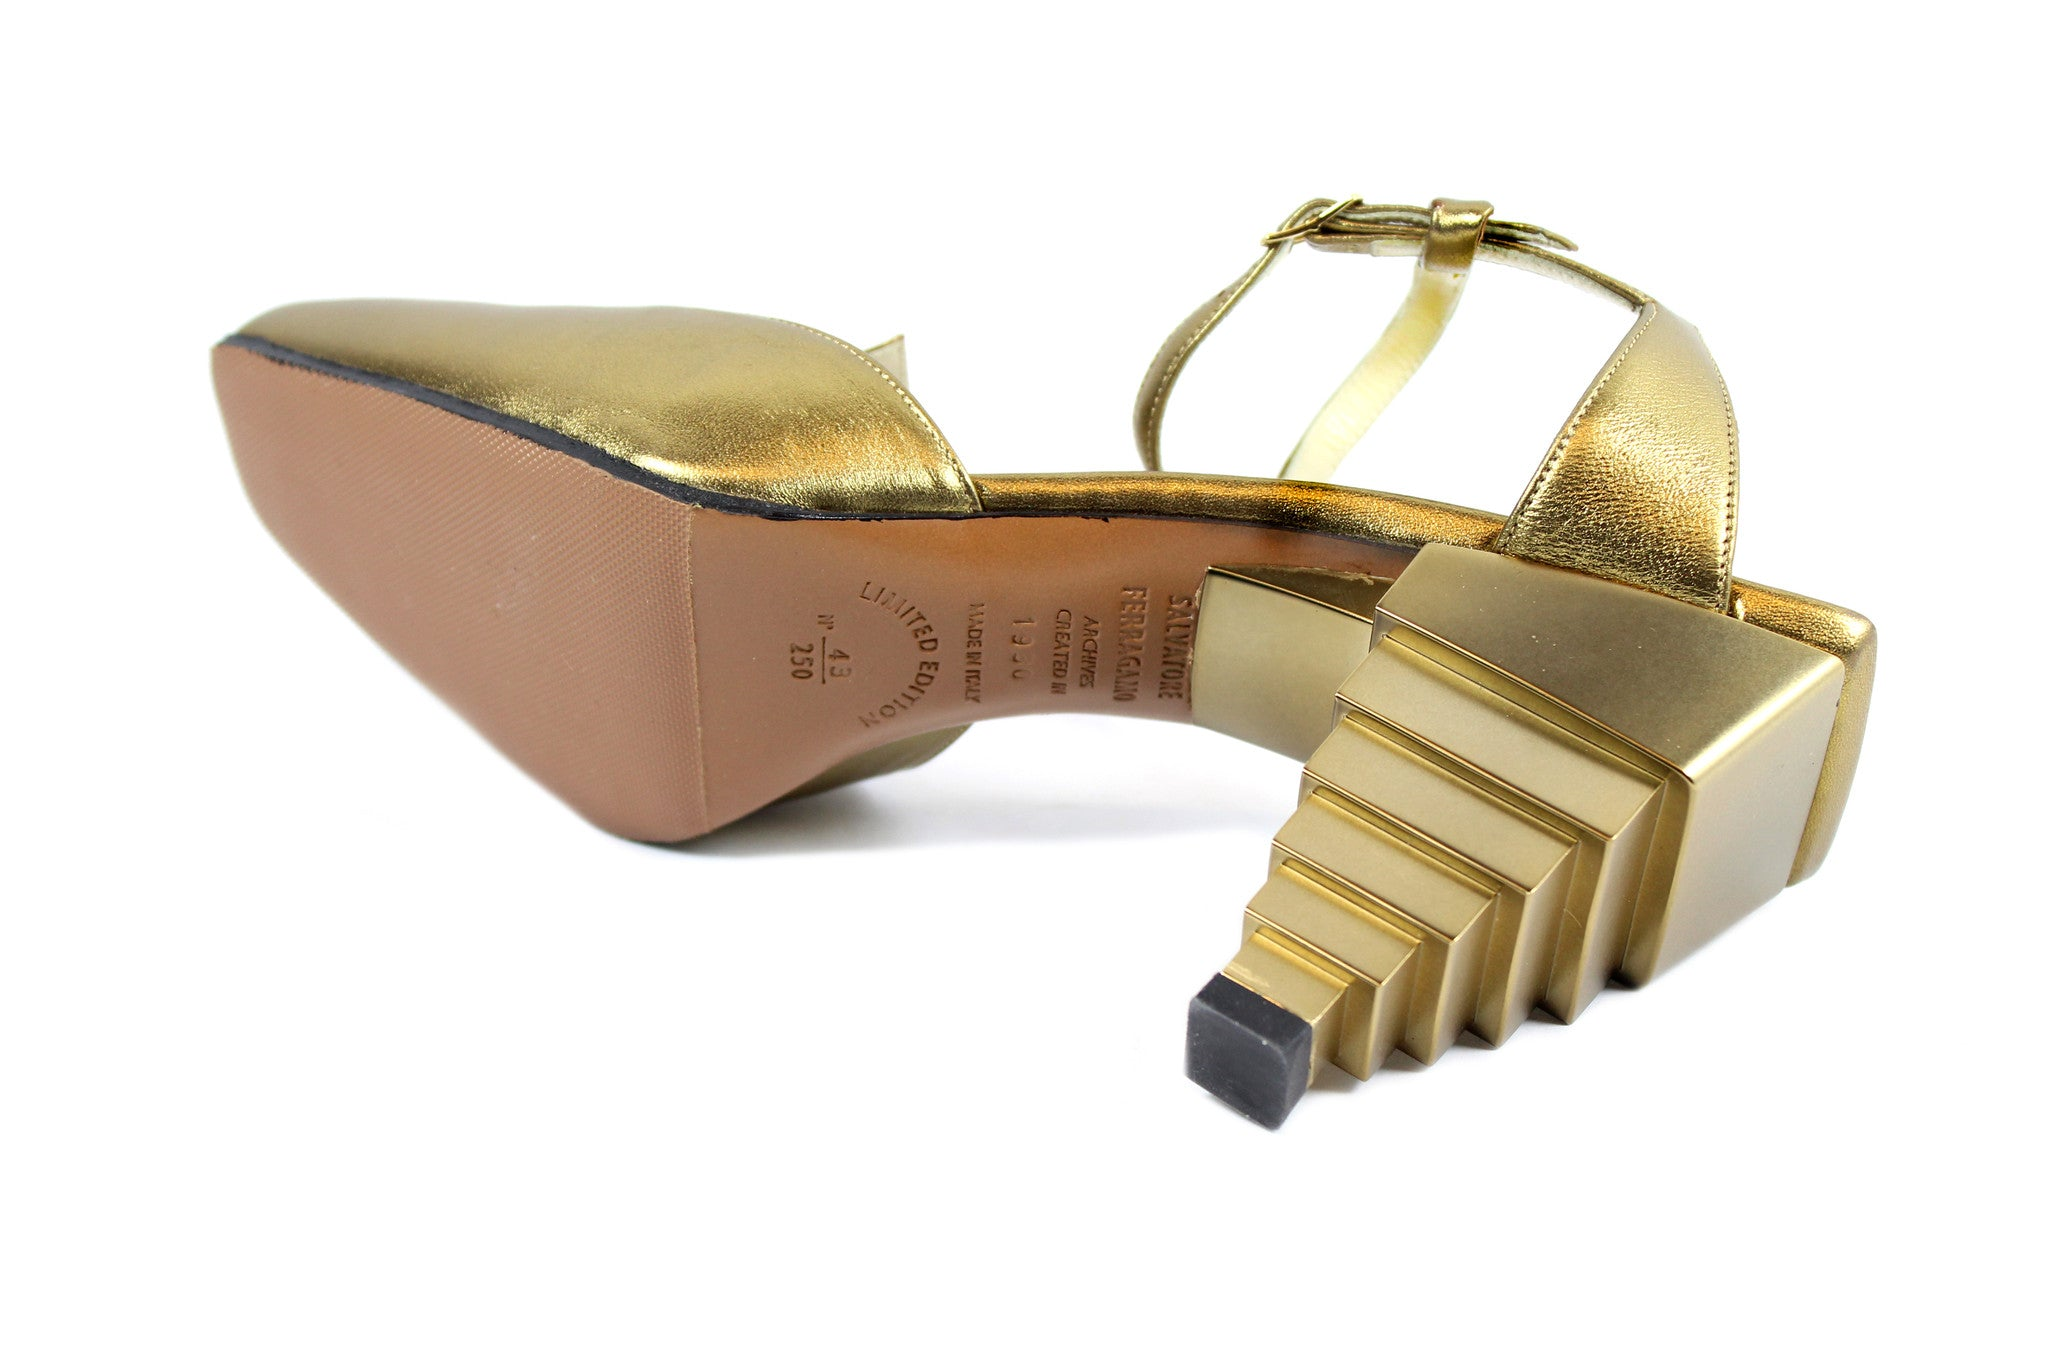 Salvatore Ferragamo 1930s Gold Pyramid Sandals (Size 6) - Encore Consignment - 11